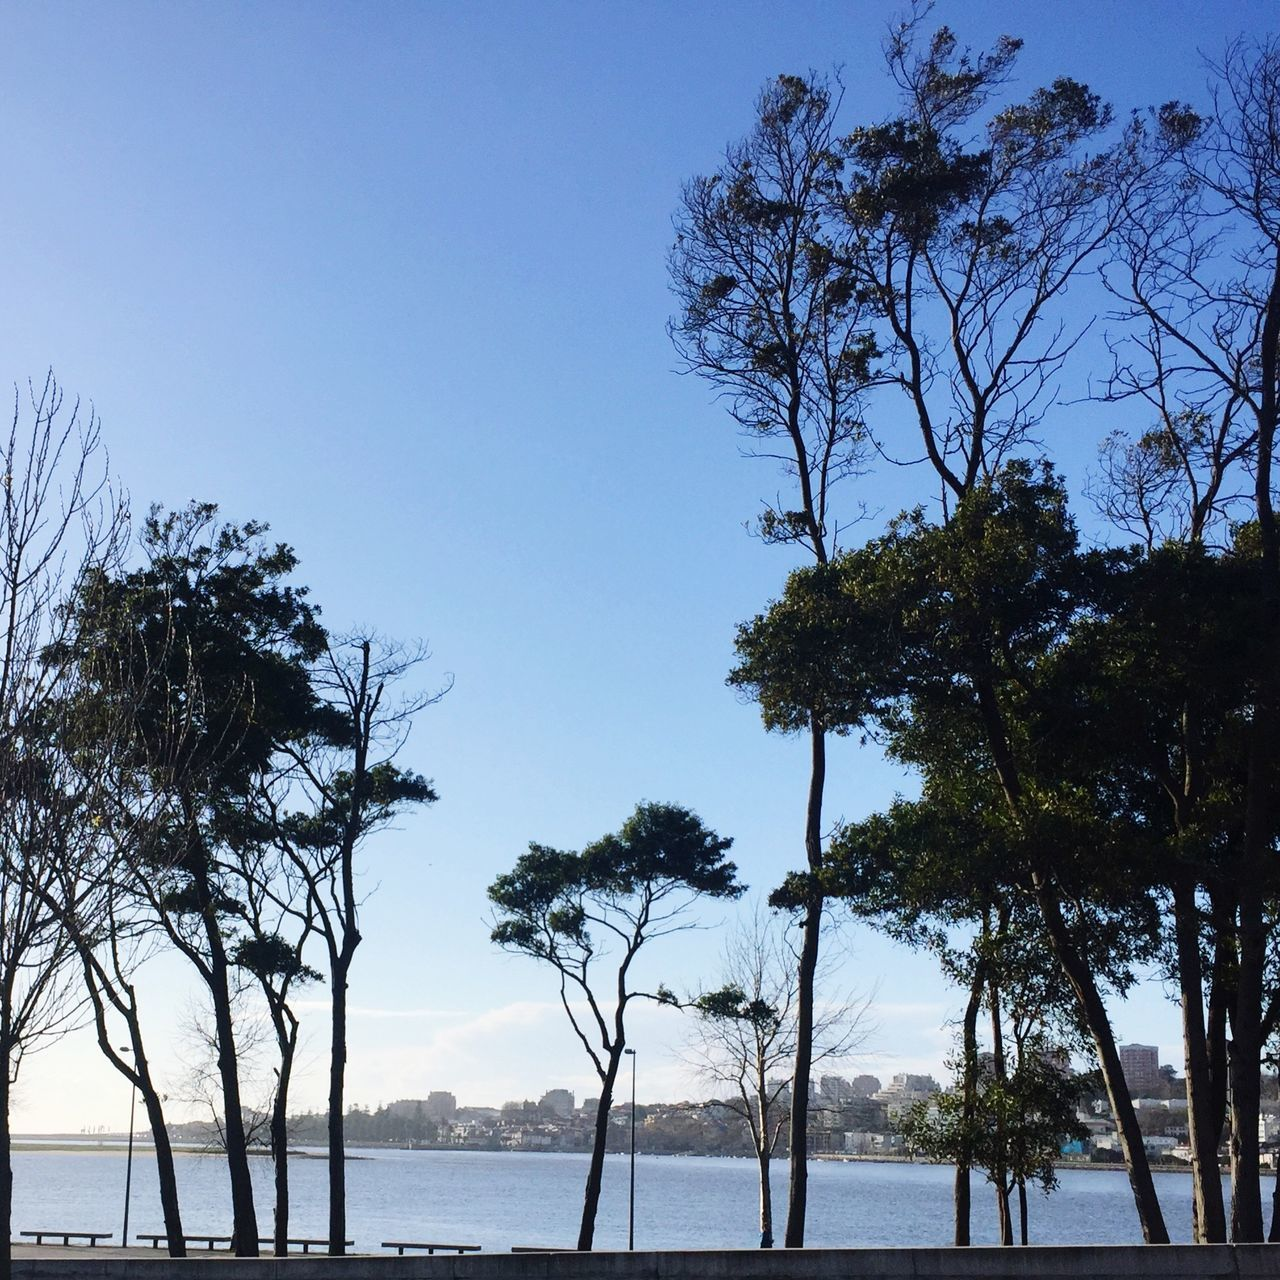 SILHOUETTE TREES GROWING BY CALM LAKE AGAINST CLEAR BLUE SKY